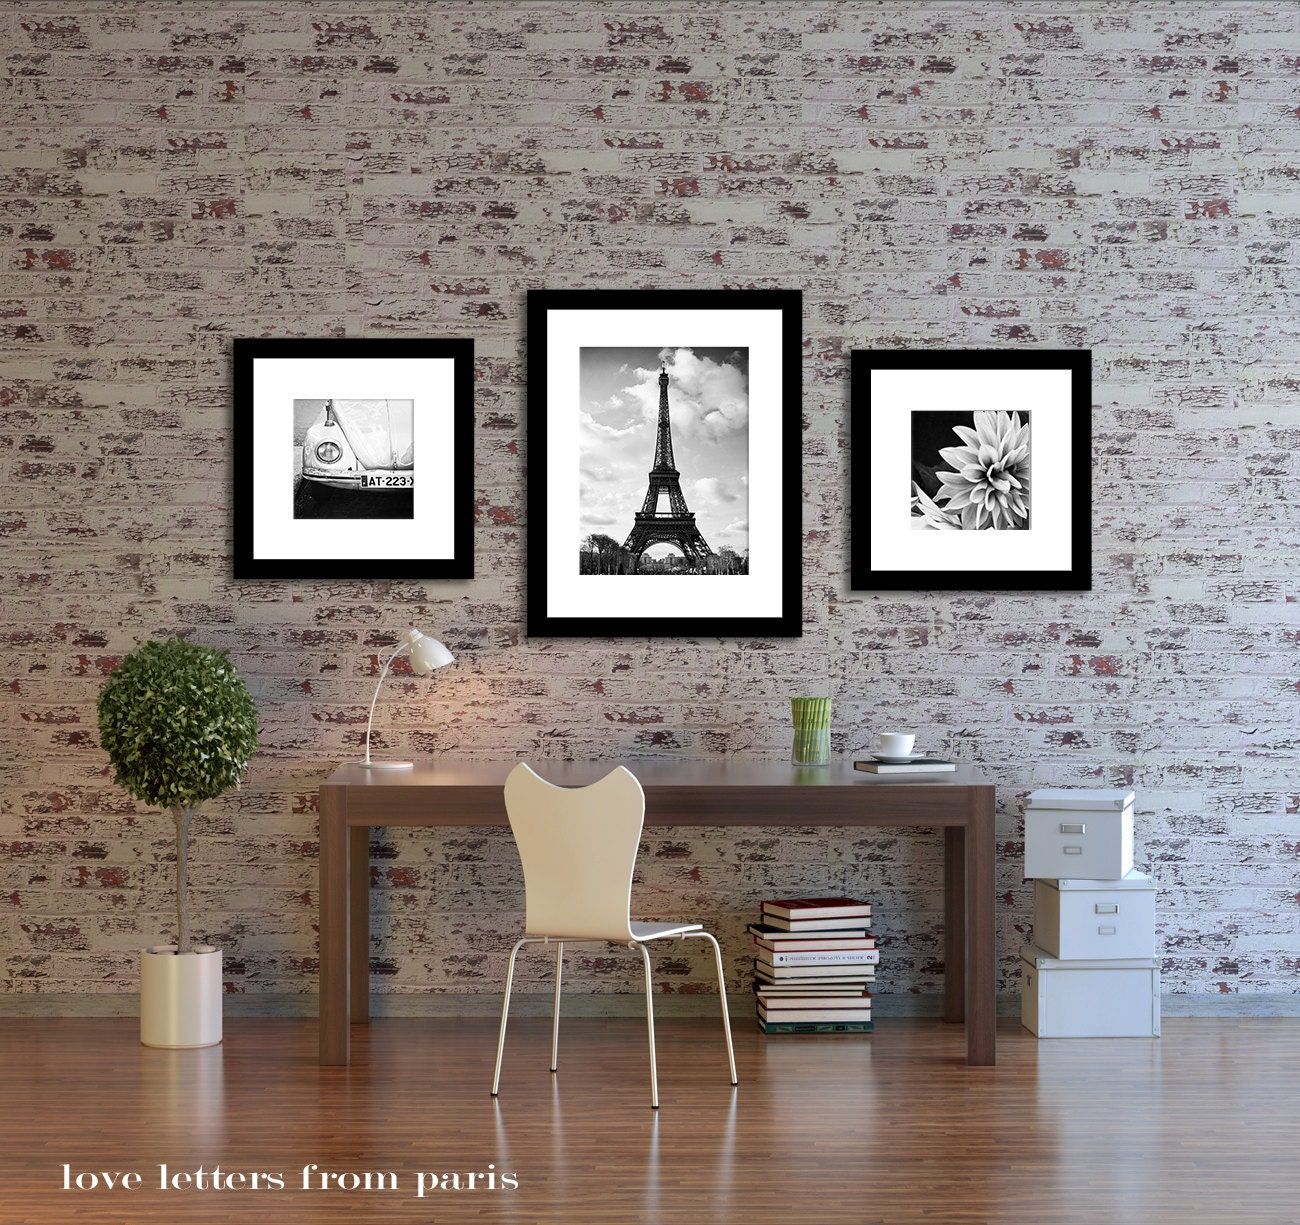 Paris Home Decor: Paris Photograph Home Decor Paris Wall Art Paris Decor